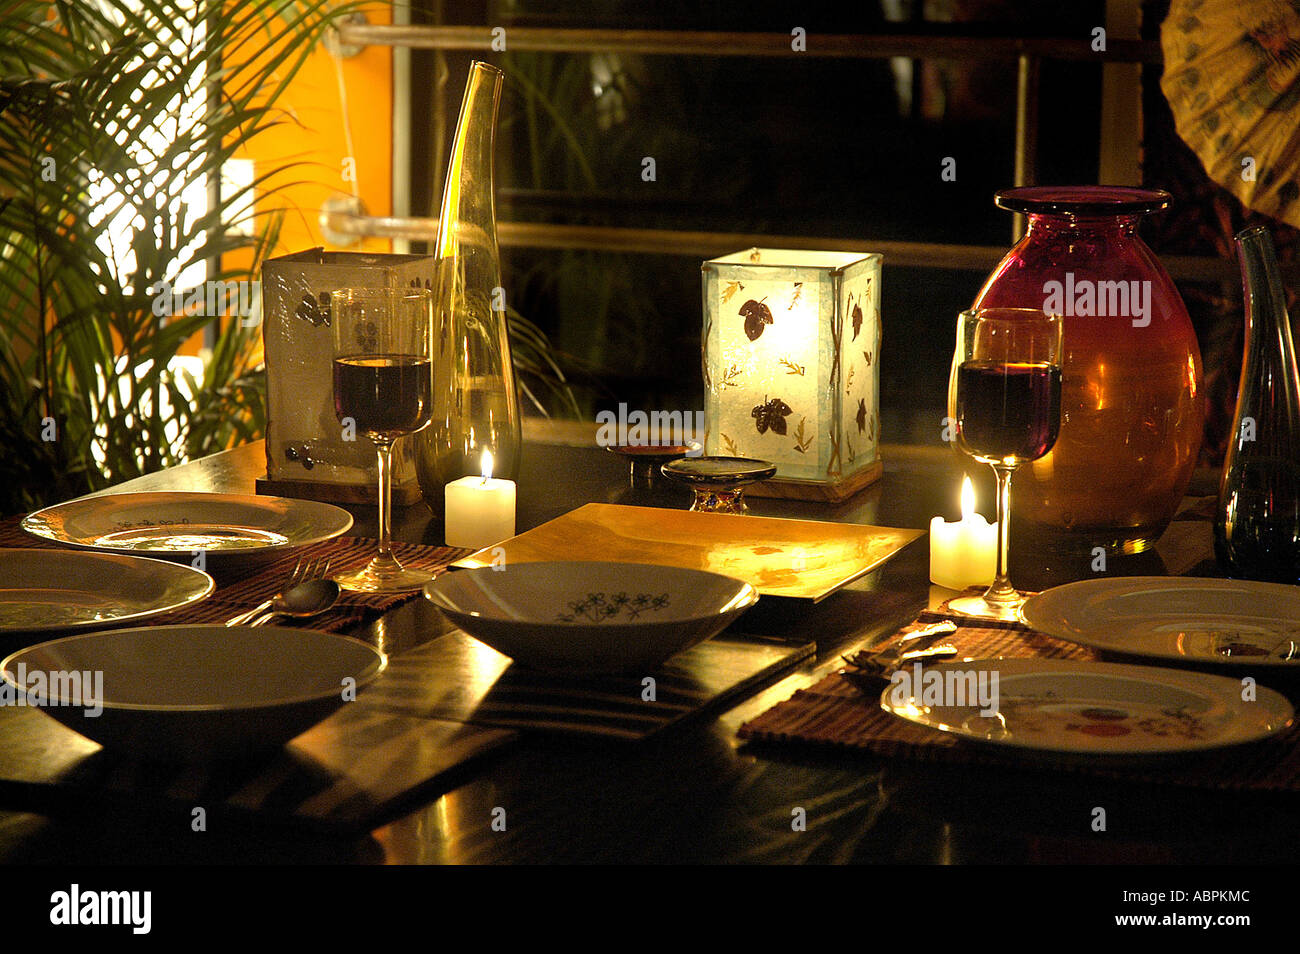 glasses table setting. SUB79060 Red Wine In Glasses Candles Table Setting For Cozy Intimate Romantic Candle Light Dinner Mellow Mood Shot L